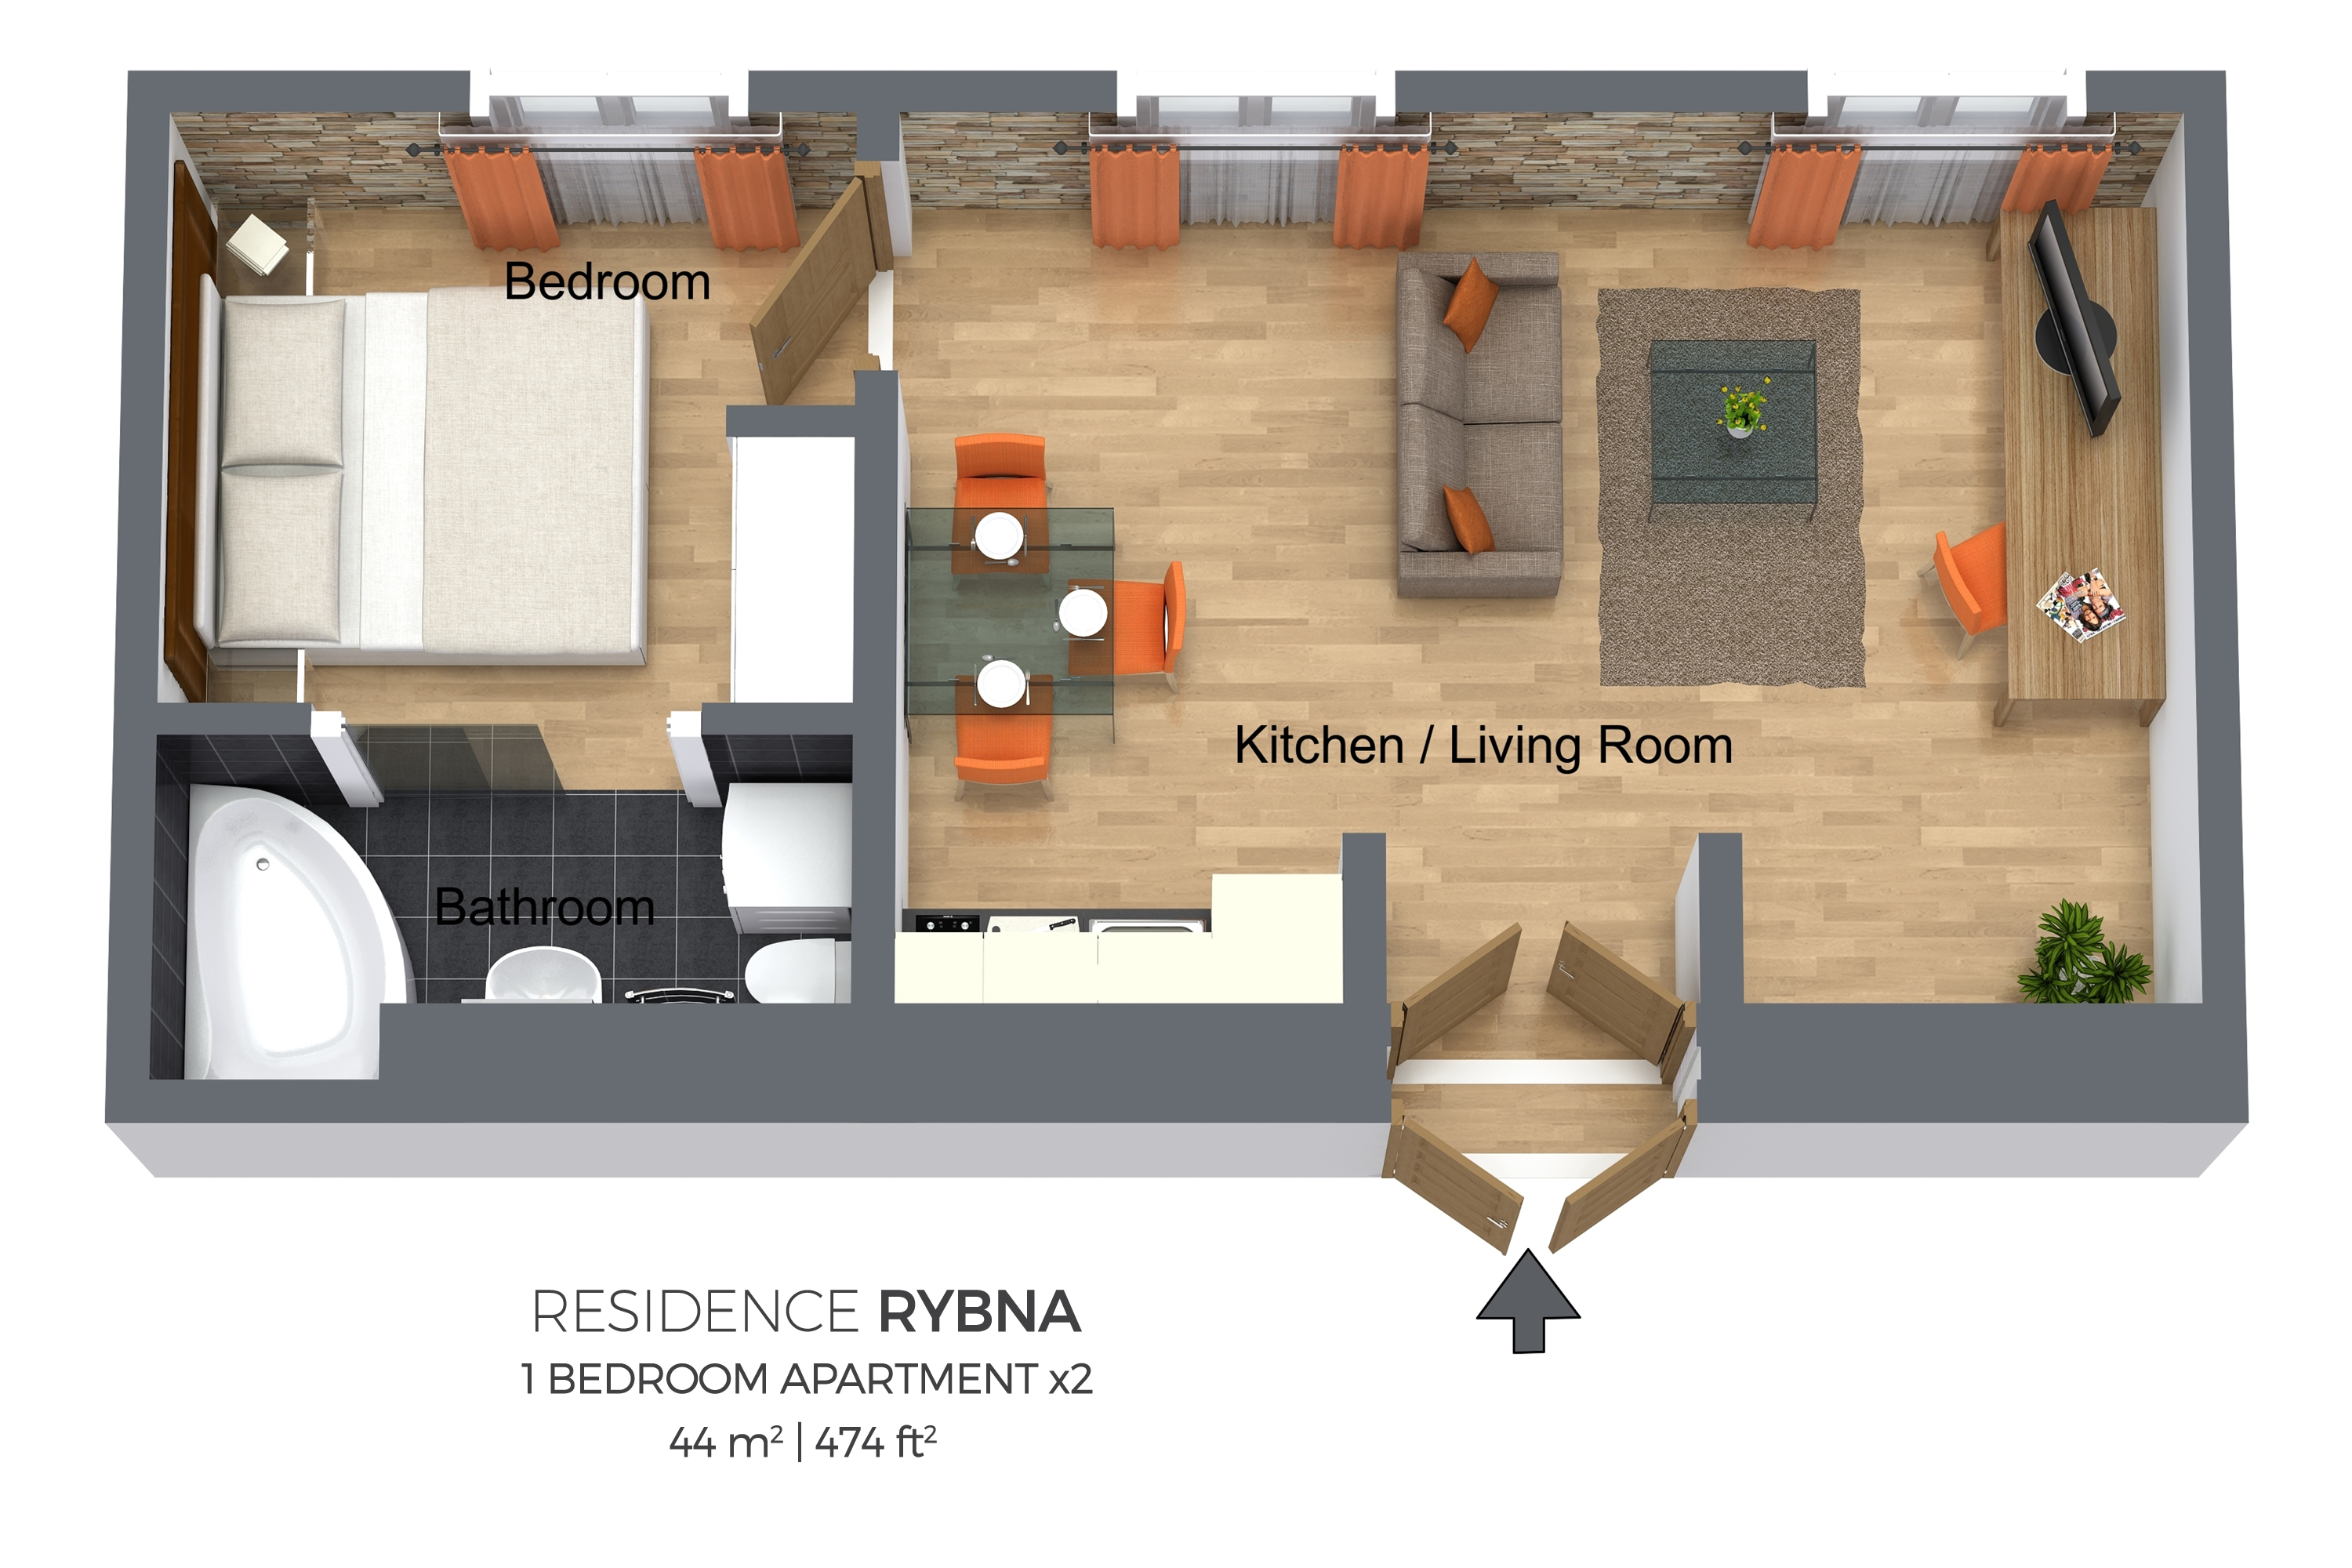 1 bed apartment at Residence Rybna Apartments